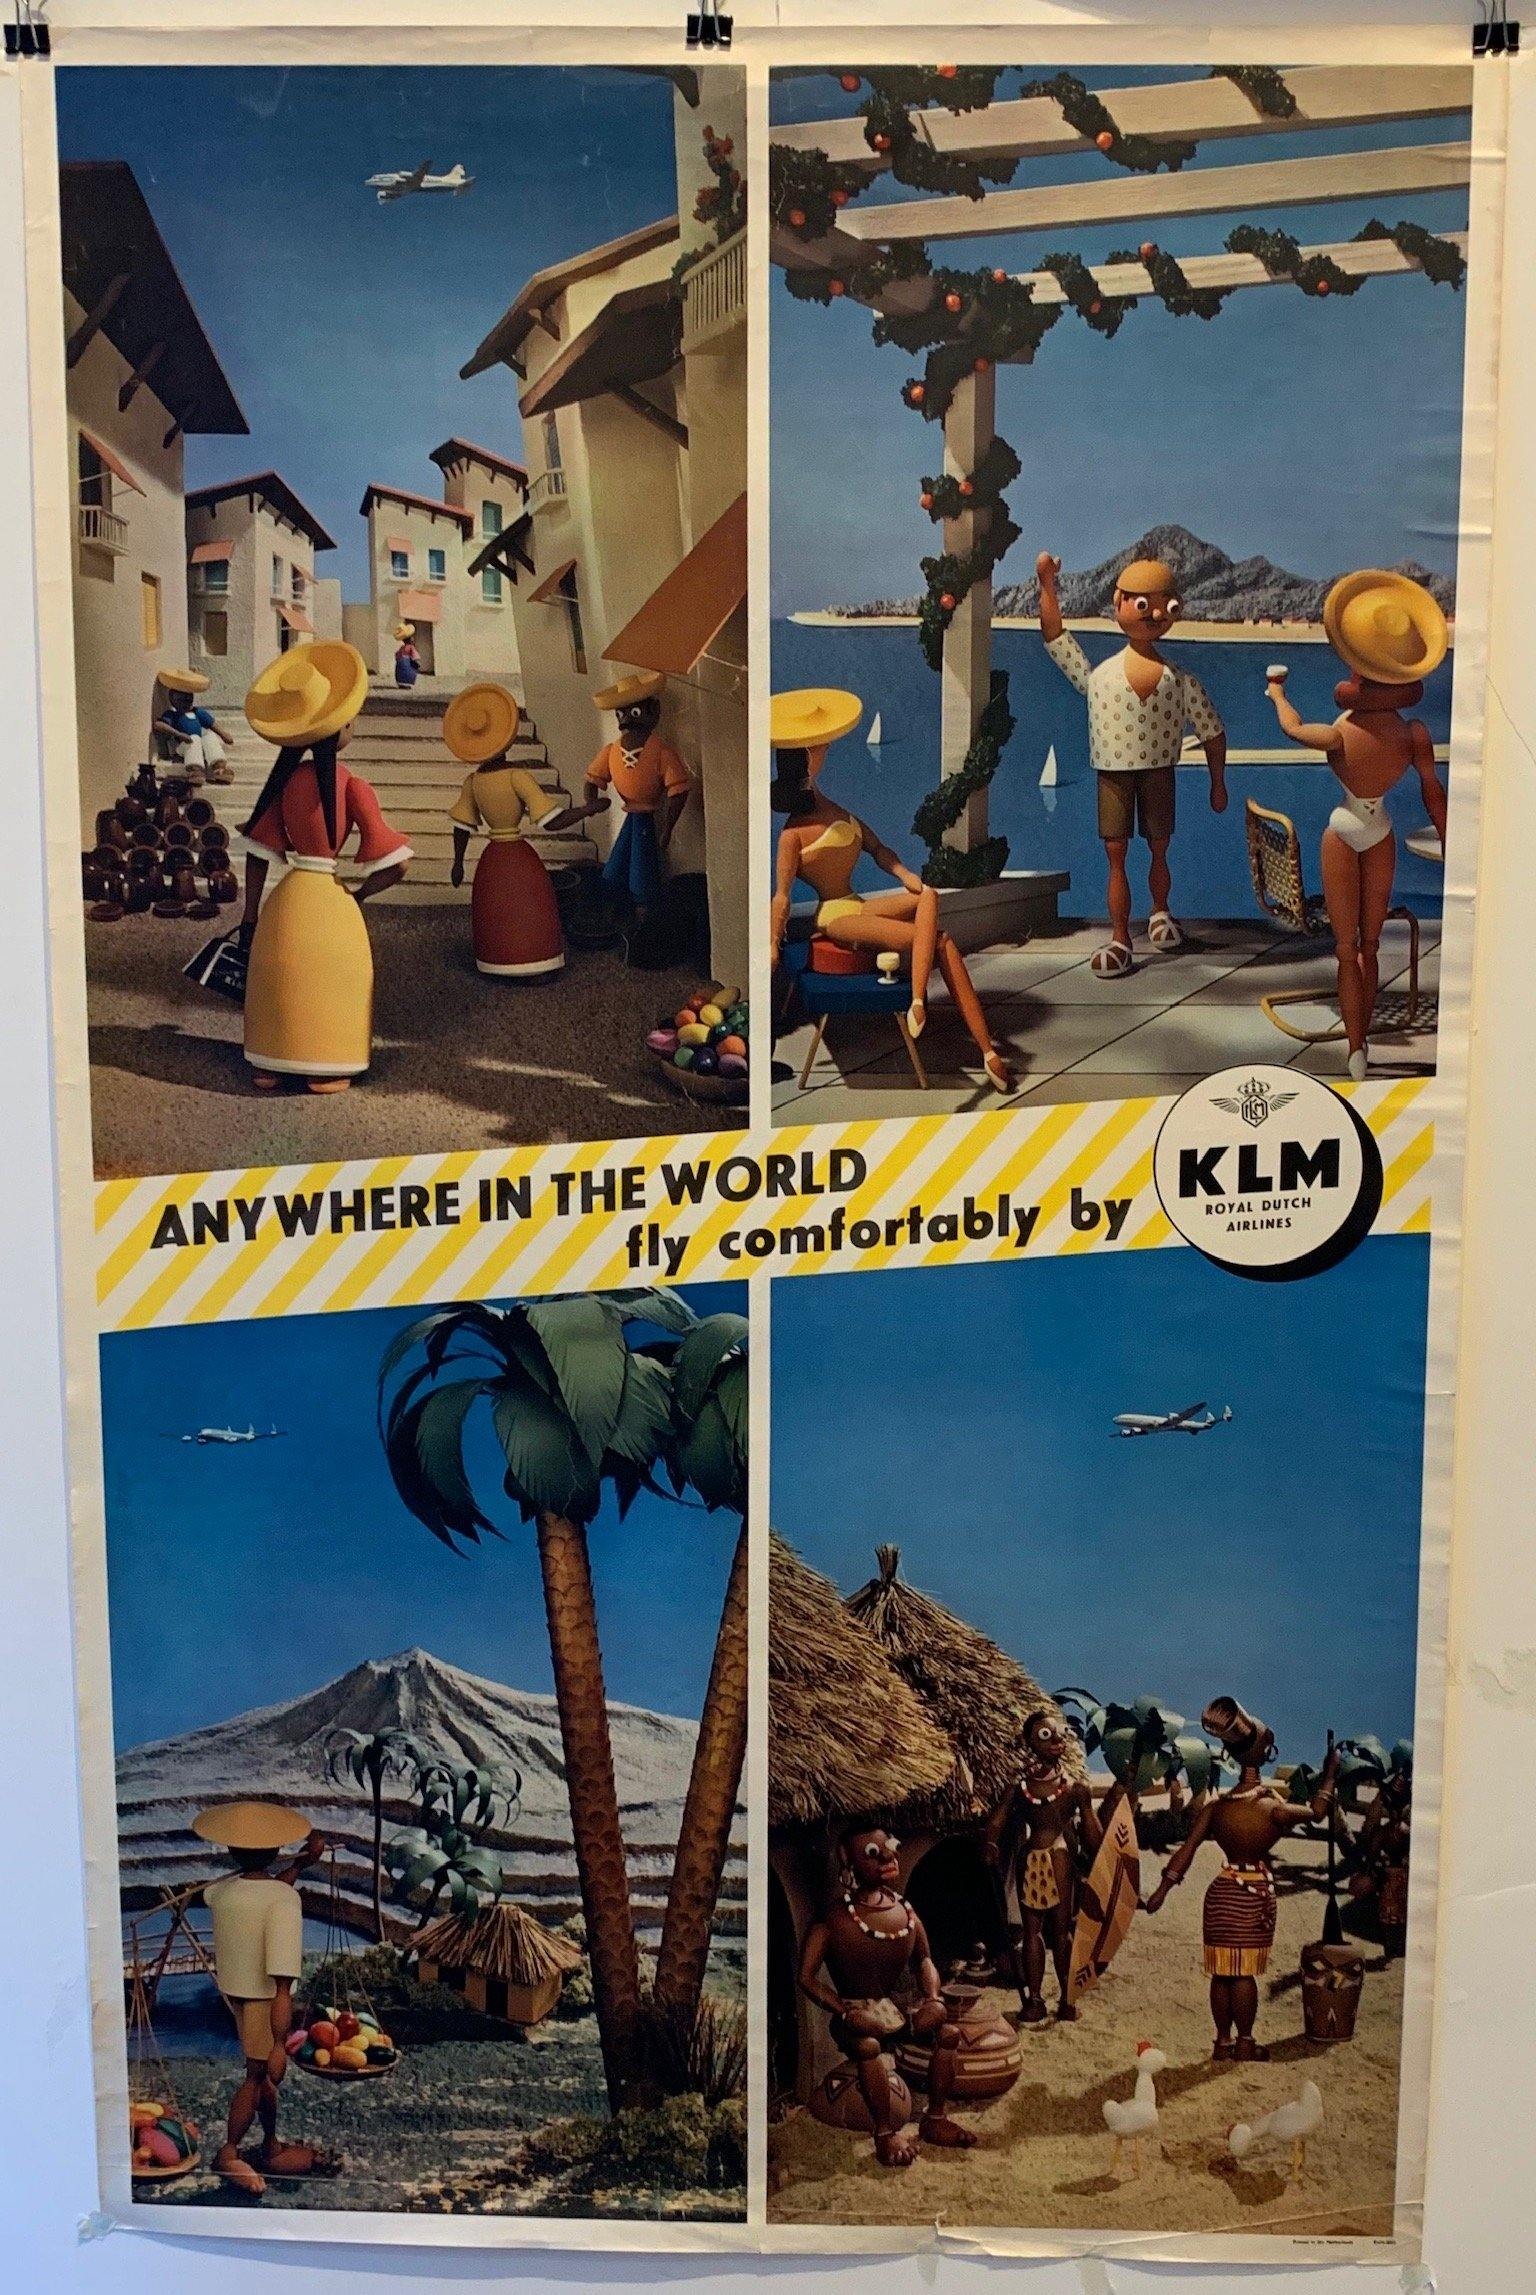 Anywhere in the World fly comfortably by KLM Royal Dutch Airlines - Poster Museum